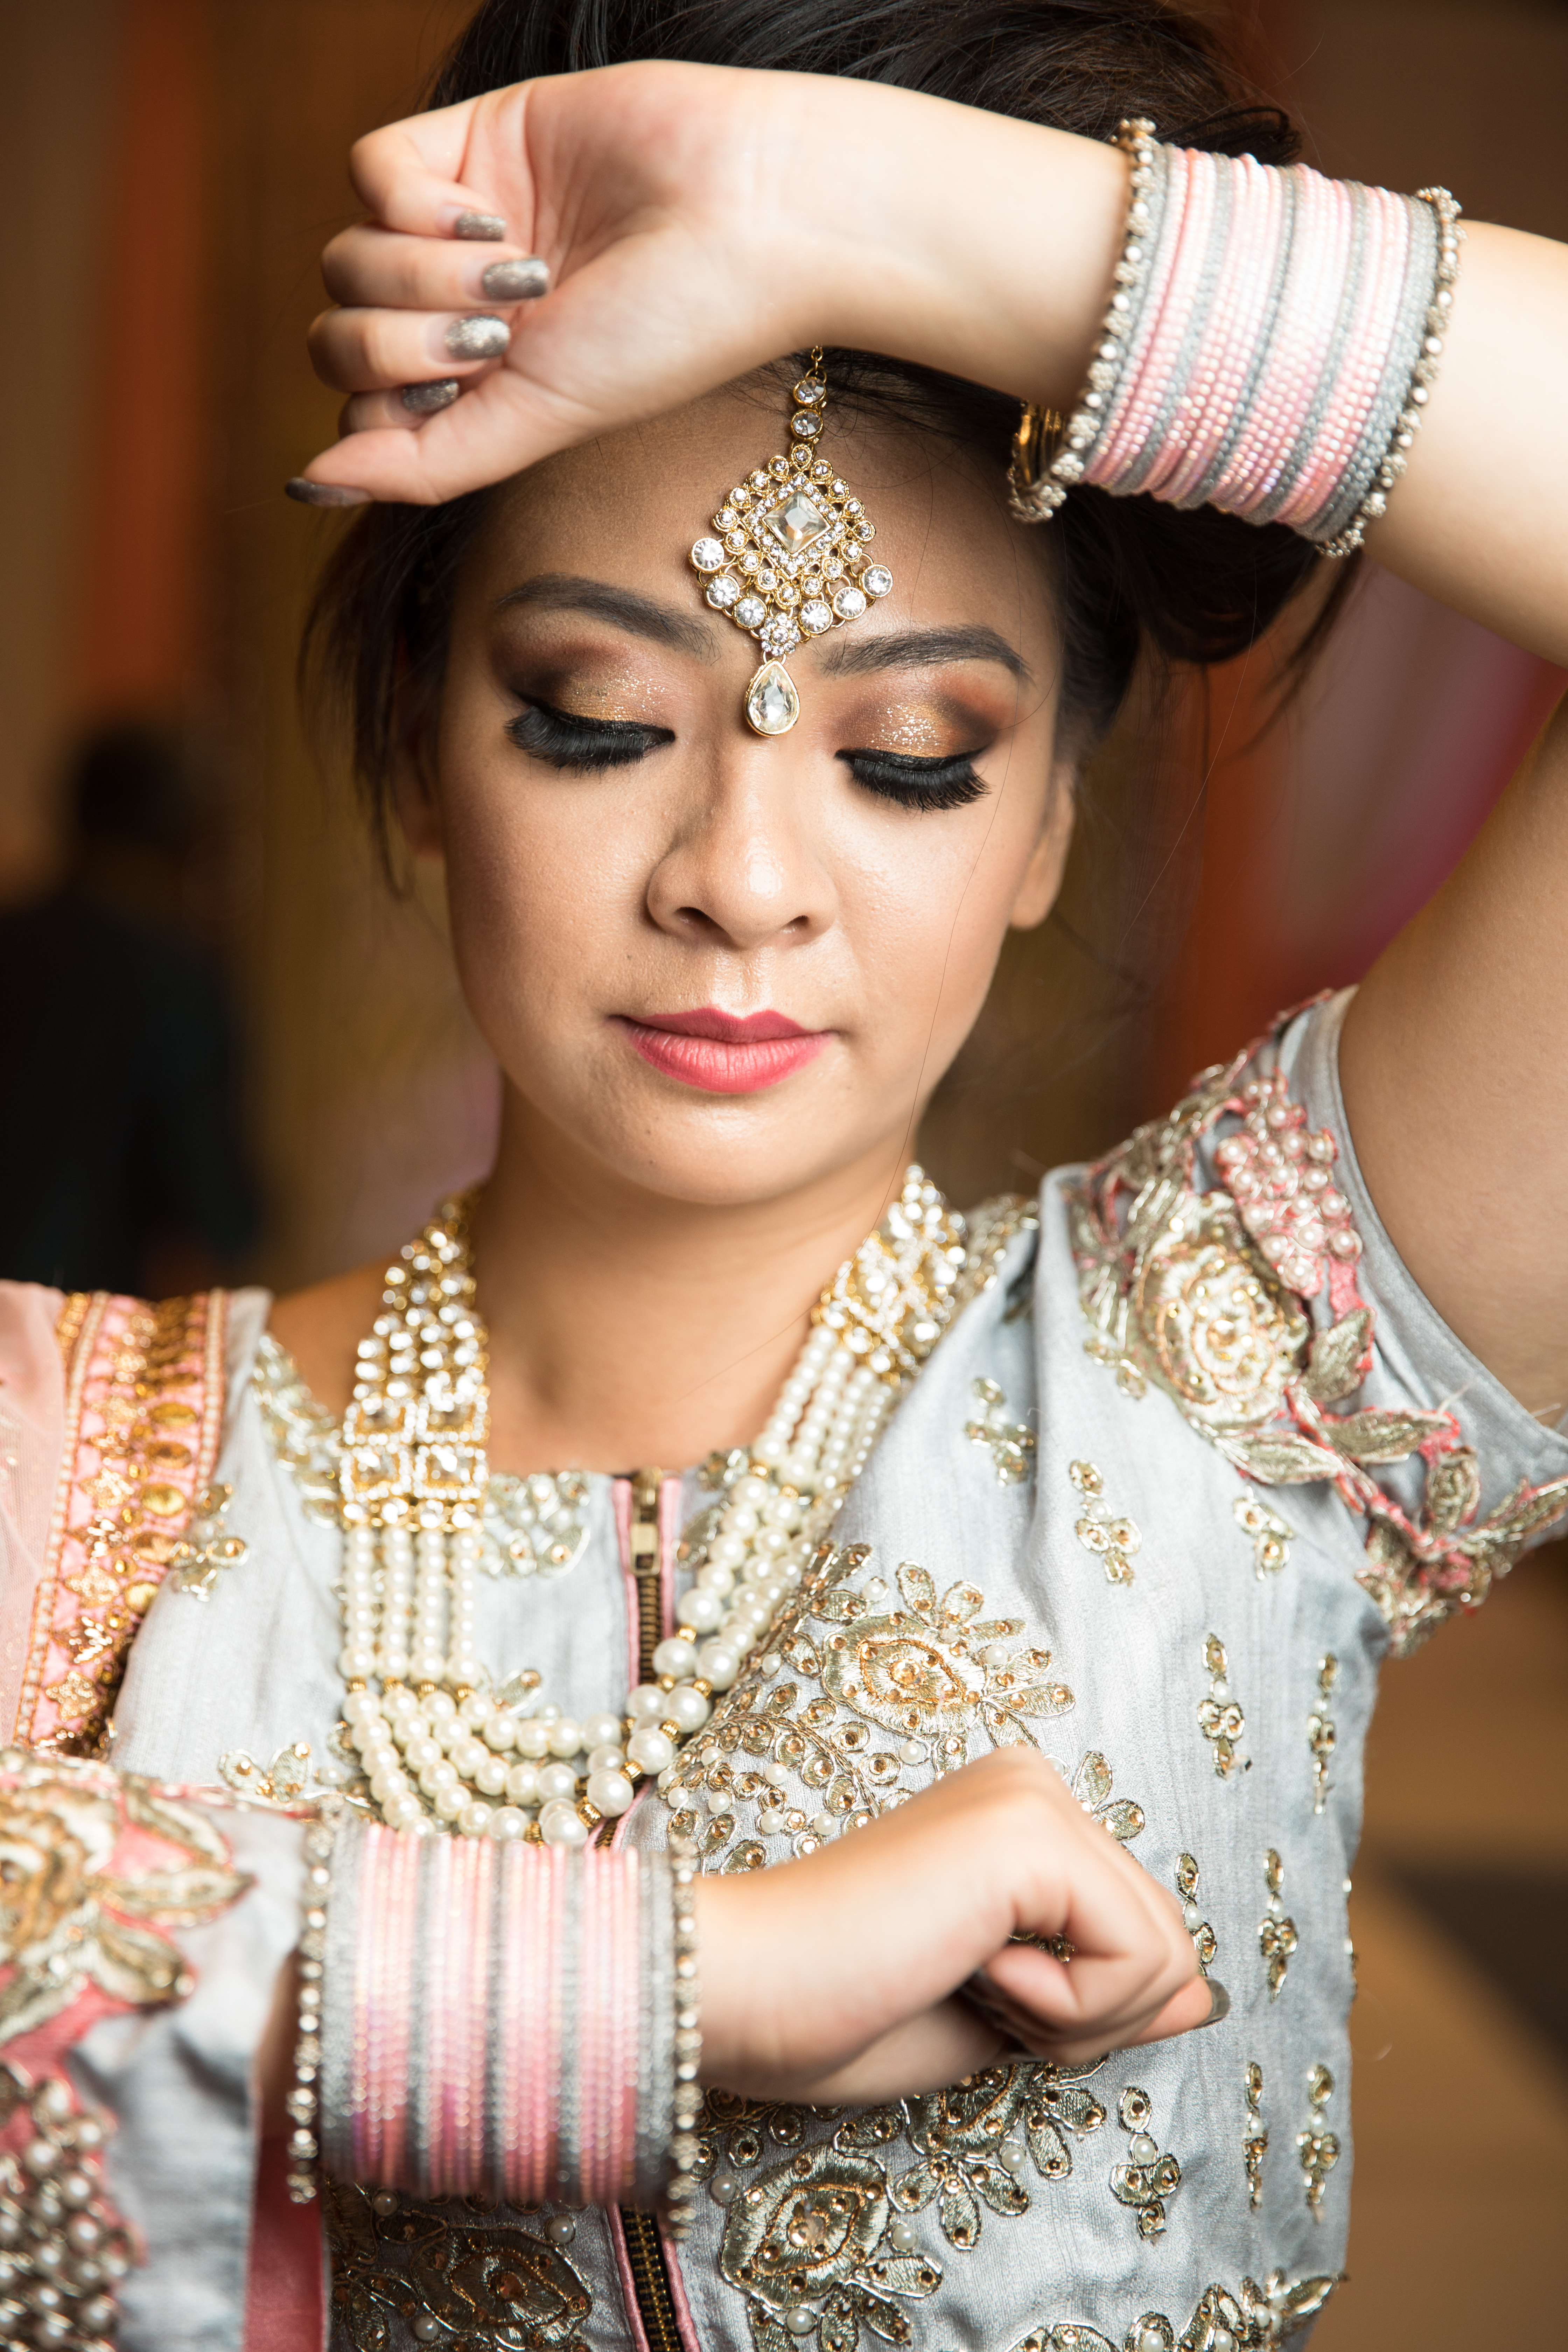 sf-bayarea-indian-wedding-bridal-show-photographer-edcarlogarcia-B35A2596